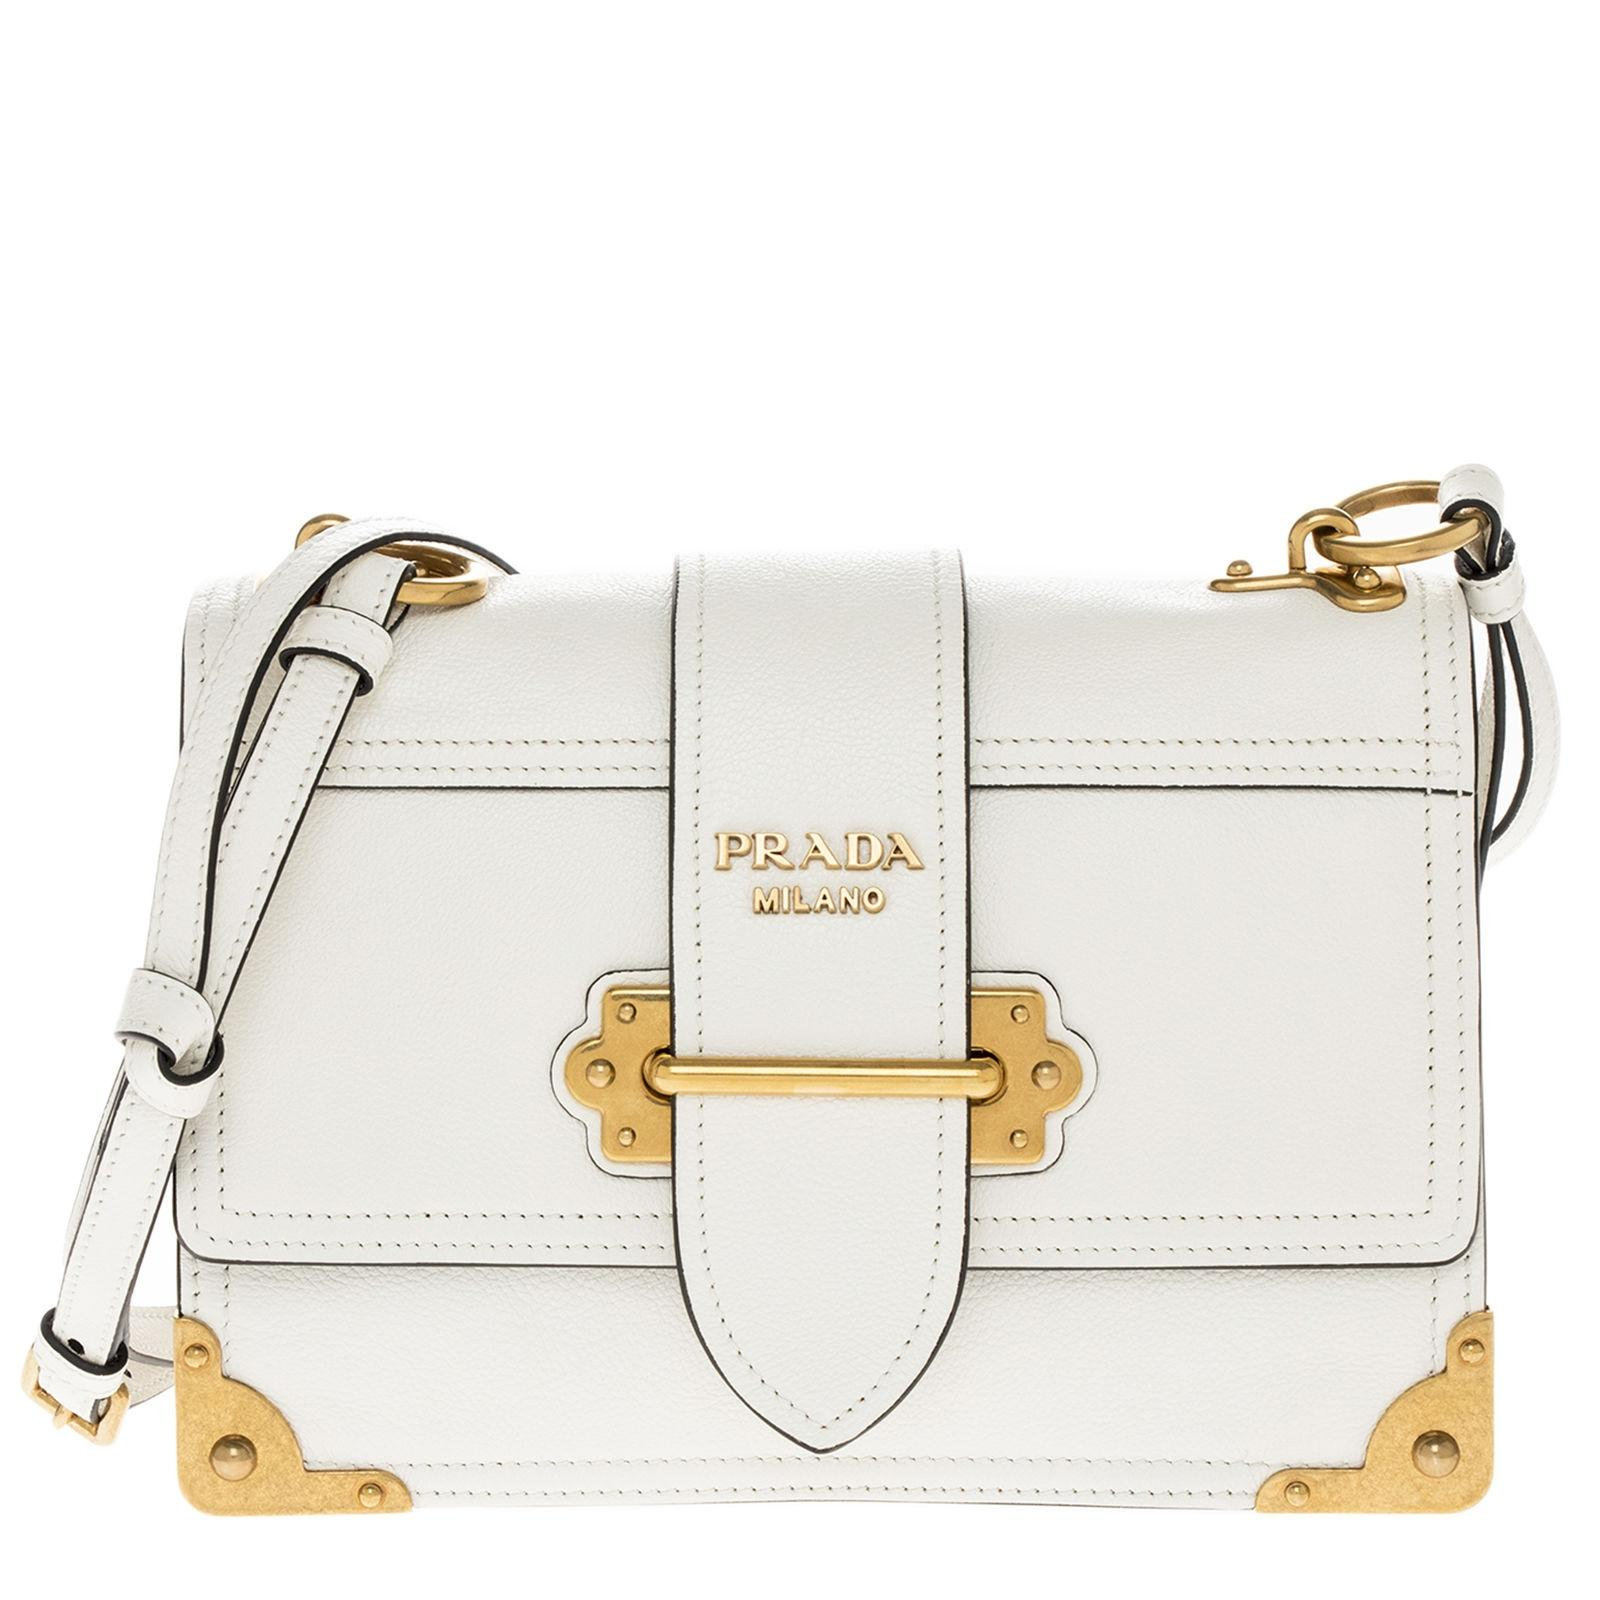 7f8e343e52d54b ... womens tote bags white e6c01 5ec8b; inexpensive prada shoulder bag  be4e2 b29b1